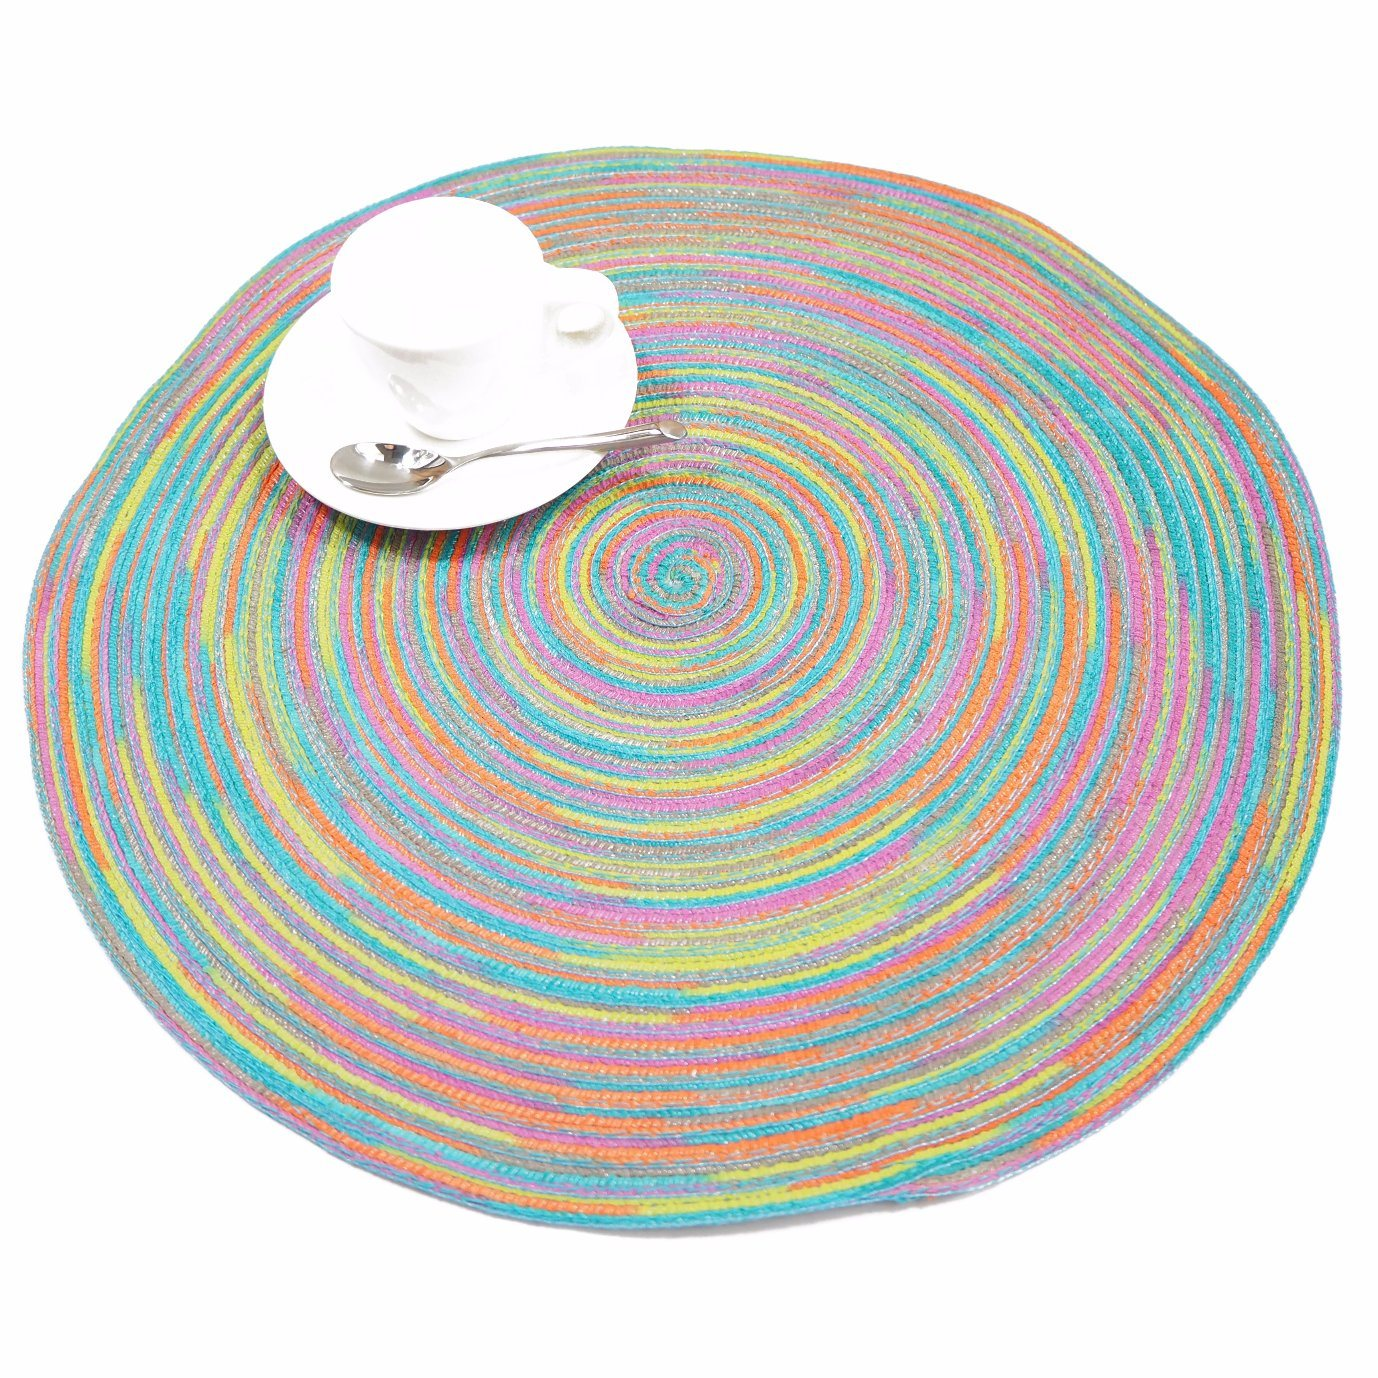 Colorful 100% Polyester Woven Placemat for Tabletop